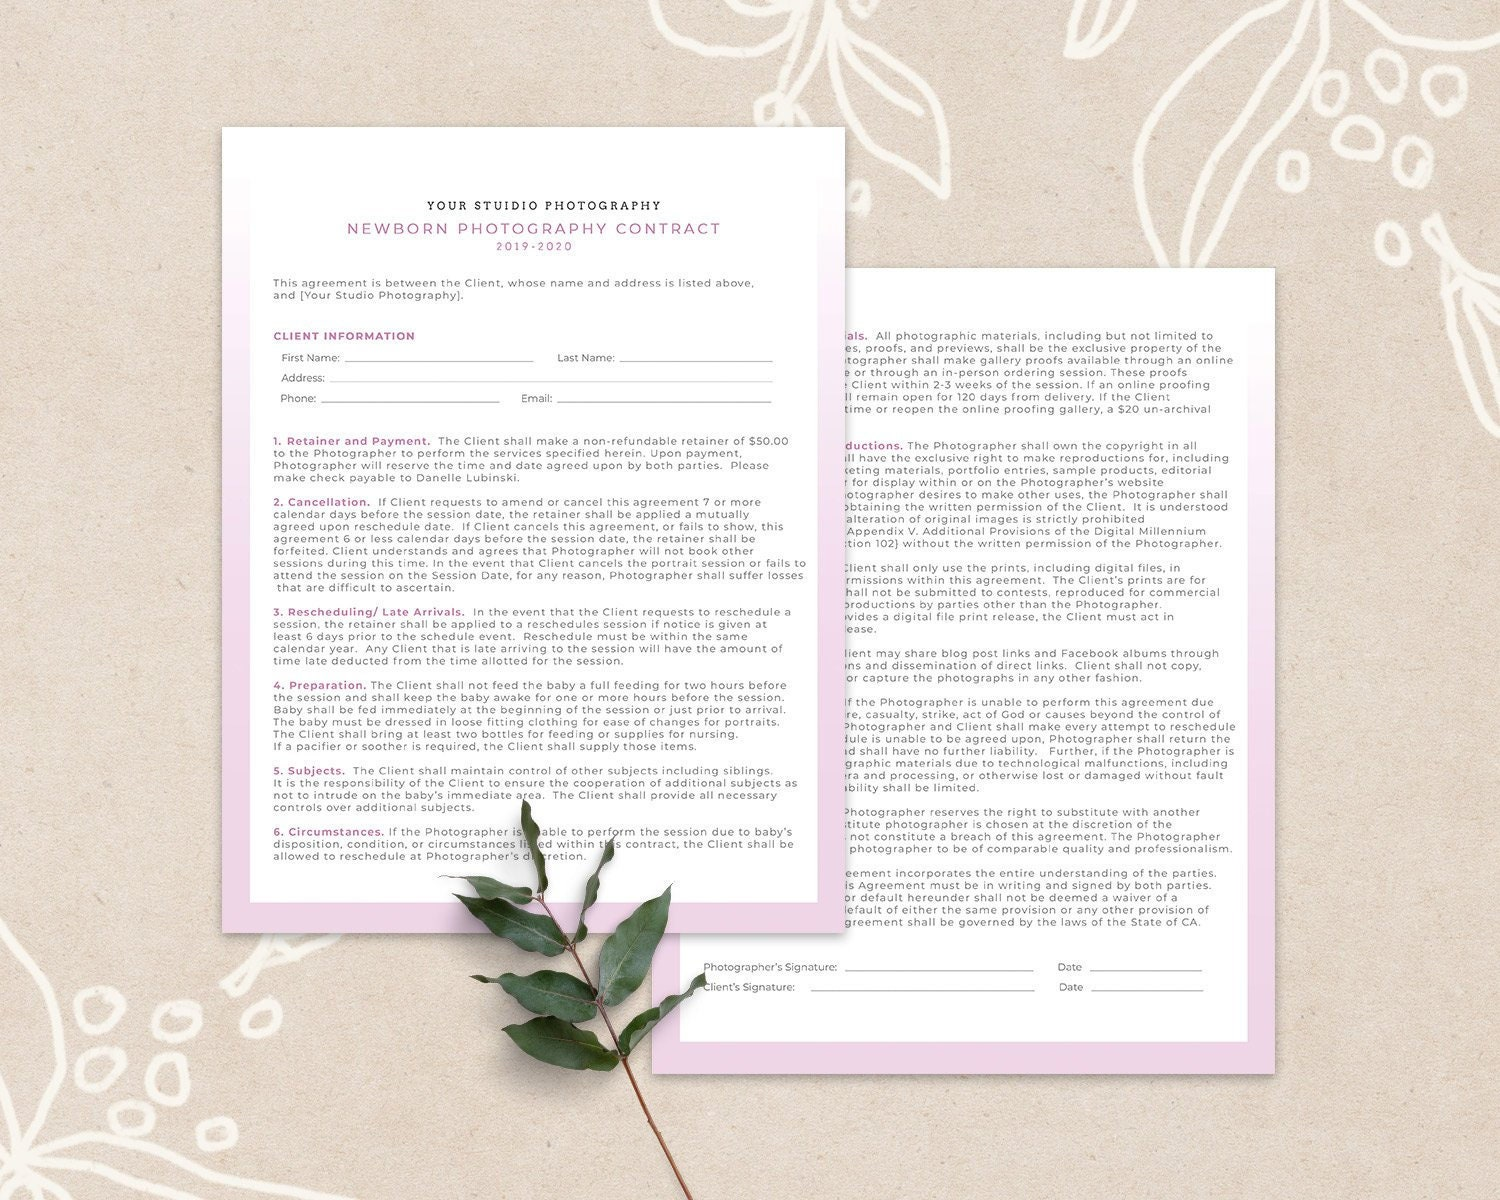 Newborn Contract Form, Client Contract Photoshop Template, Newborn  Photography Template, Contract Template 002